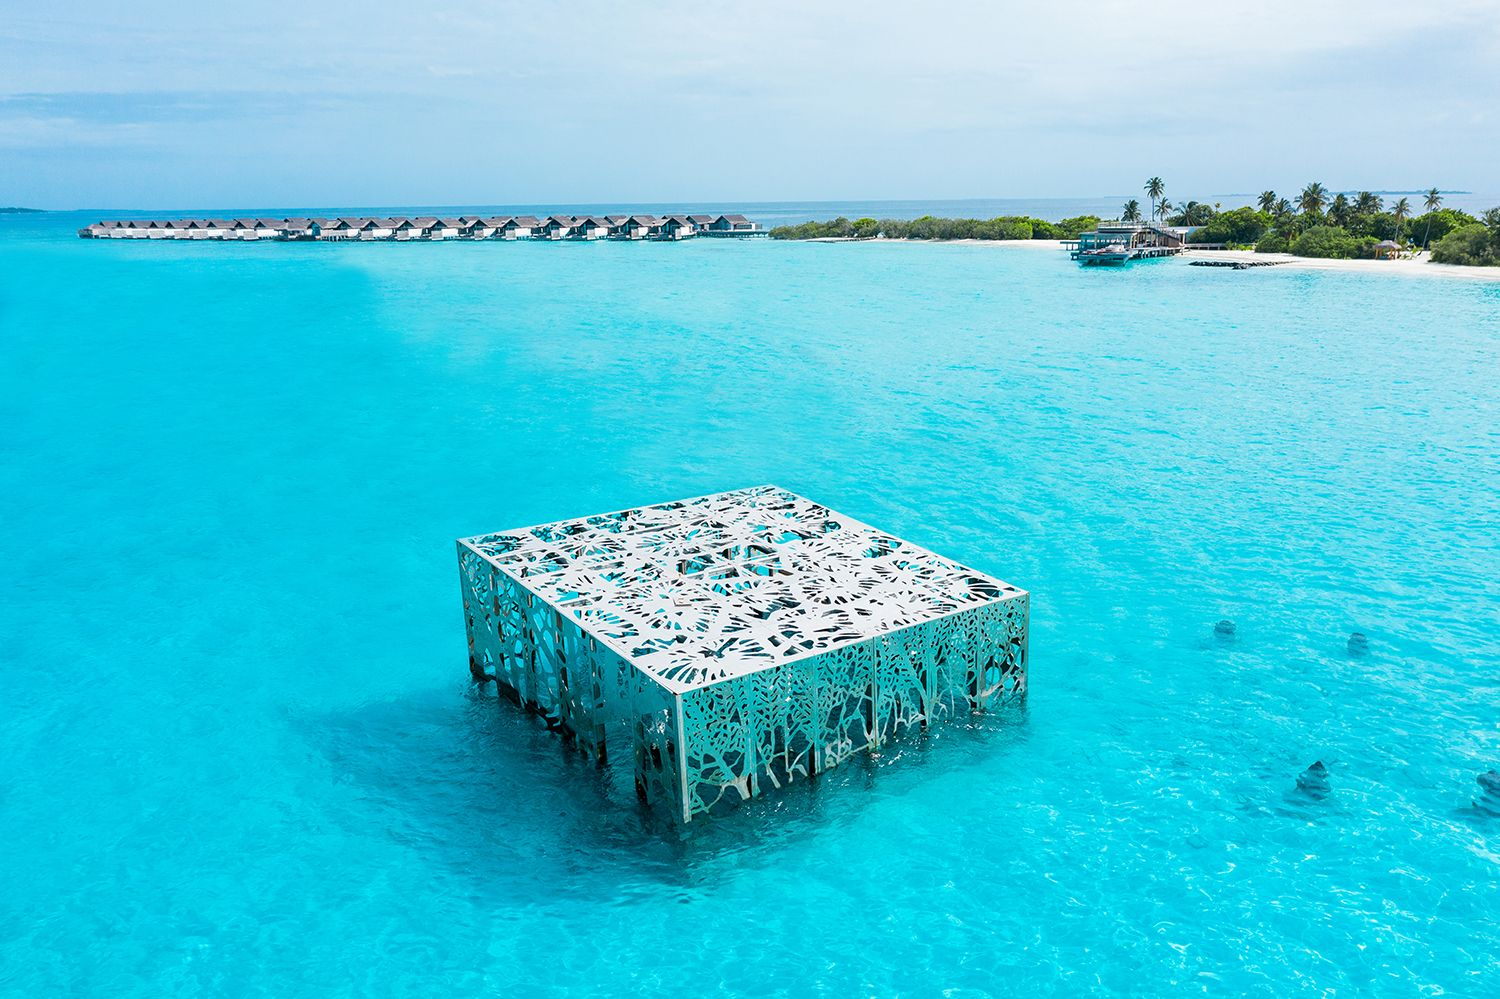 Eco-Art: Fairmont Maldives Unveils Its Spectacular Coralarium